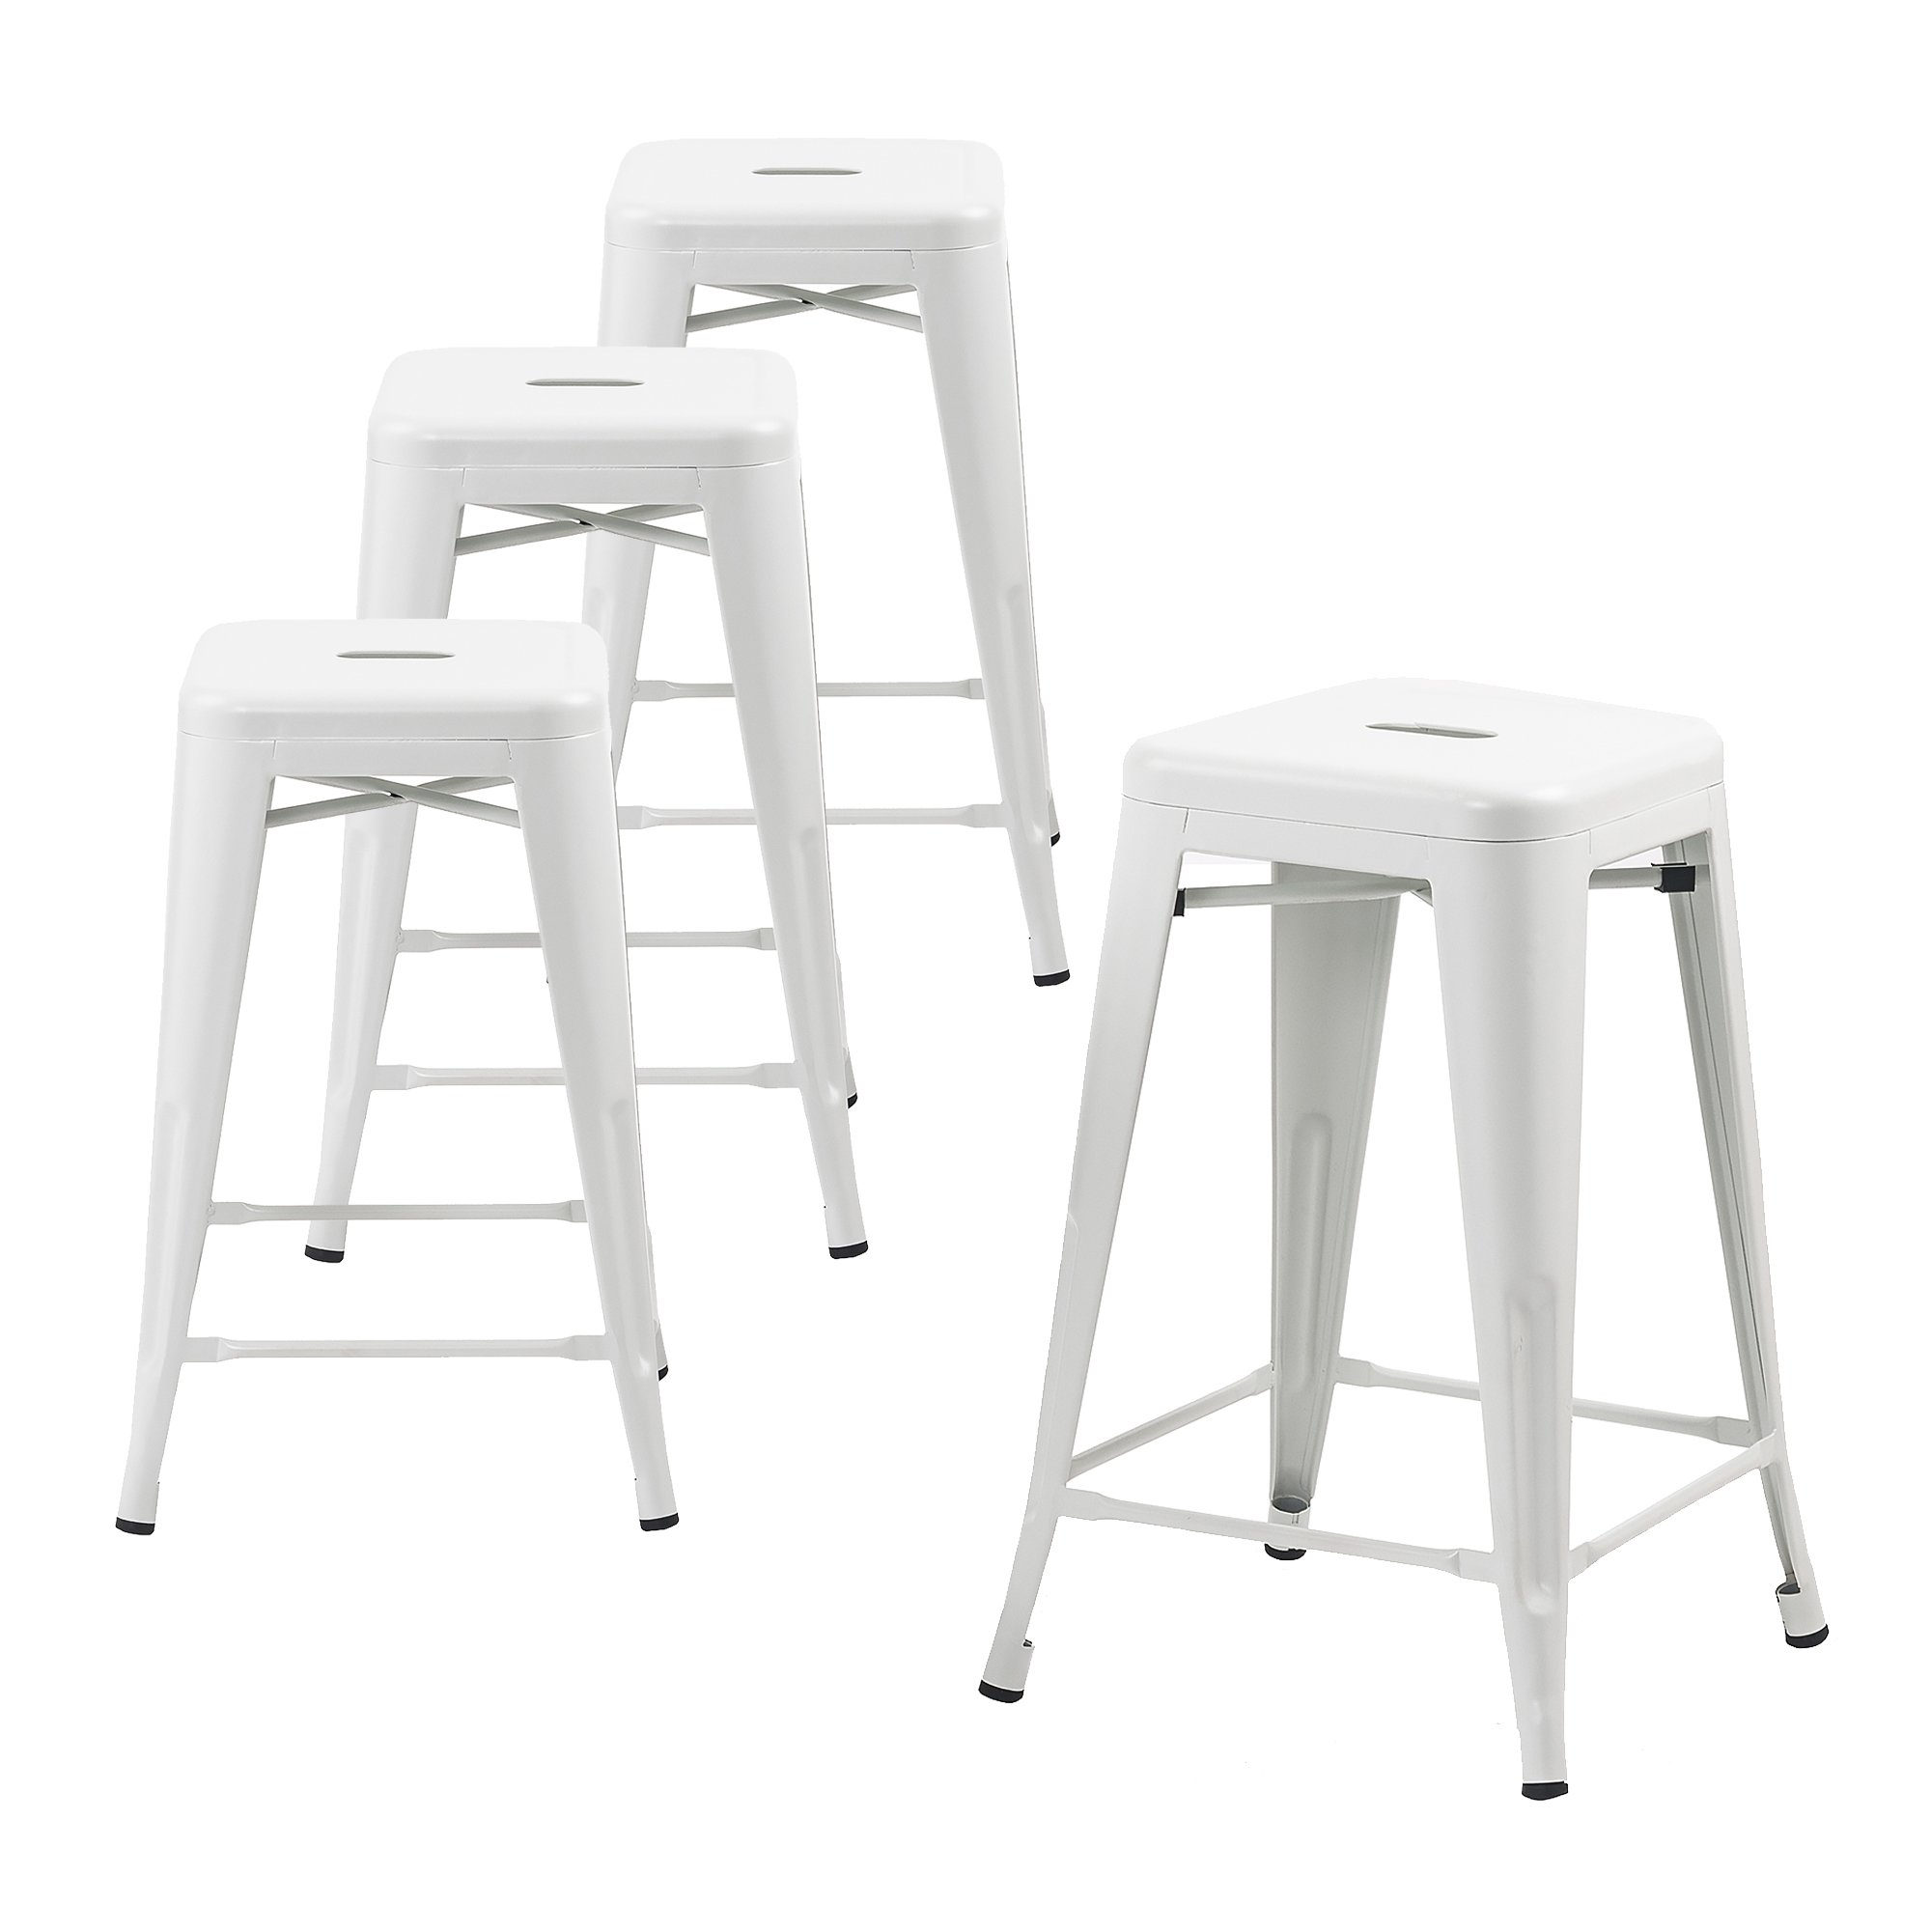 Buschman Store Metal Bar Stools 24'' Counter Height, Indoor/Outdoor and Stackable, Set of 4 (Matte White) by Buschman